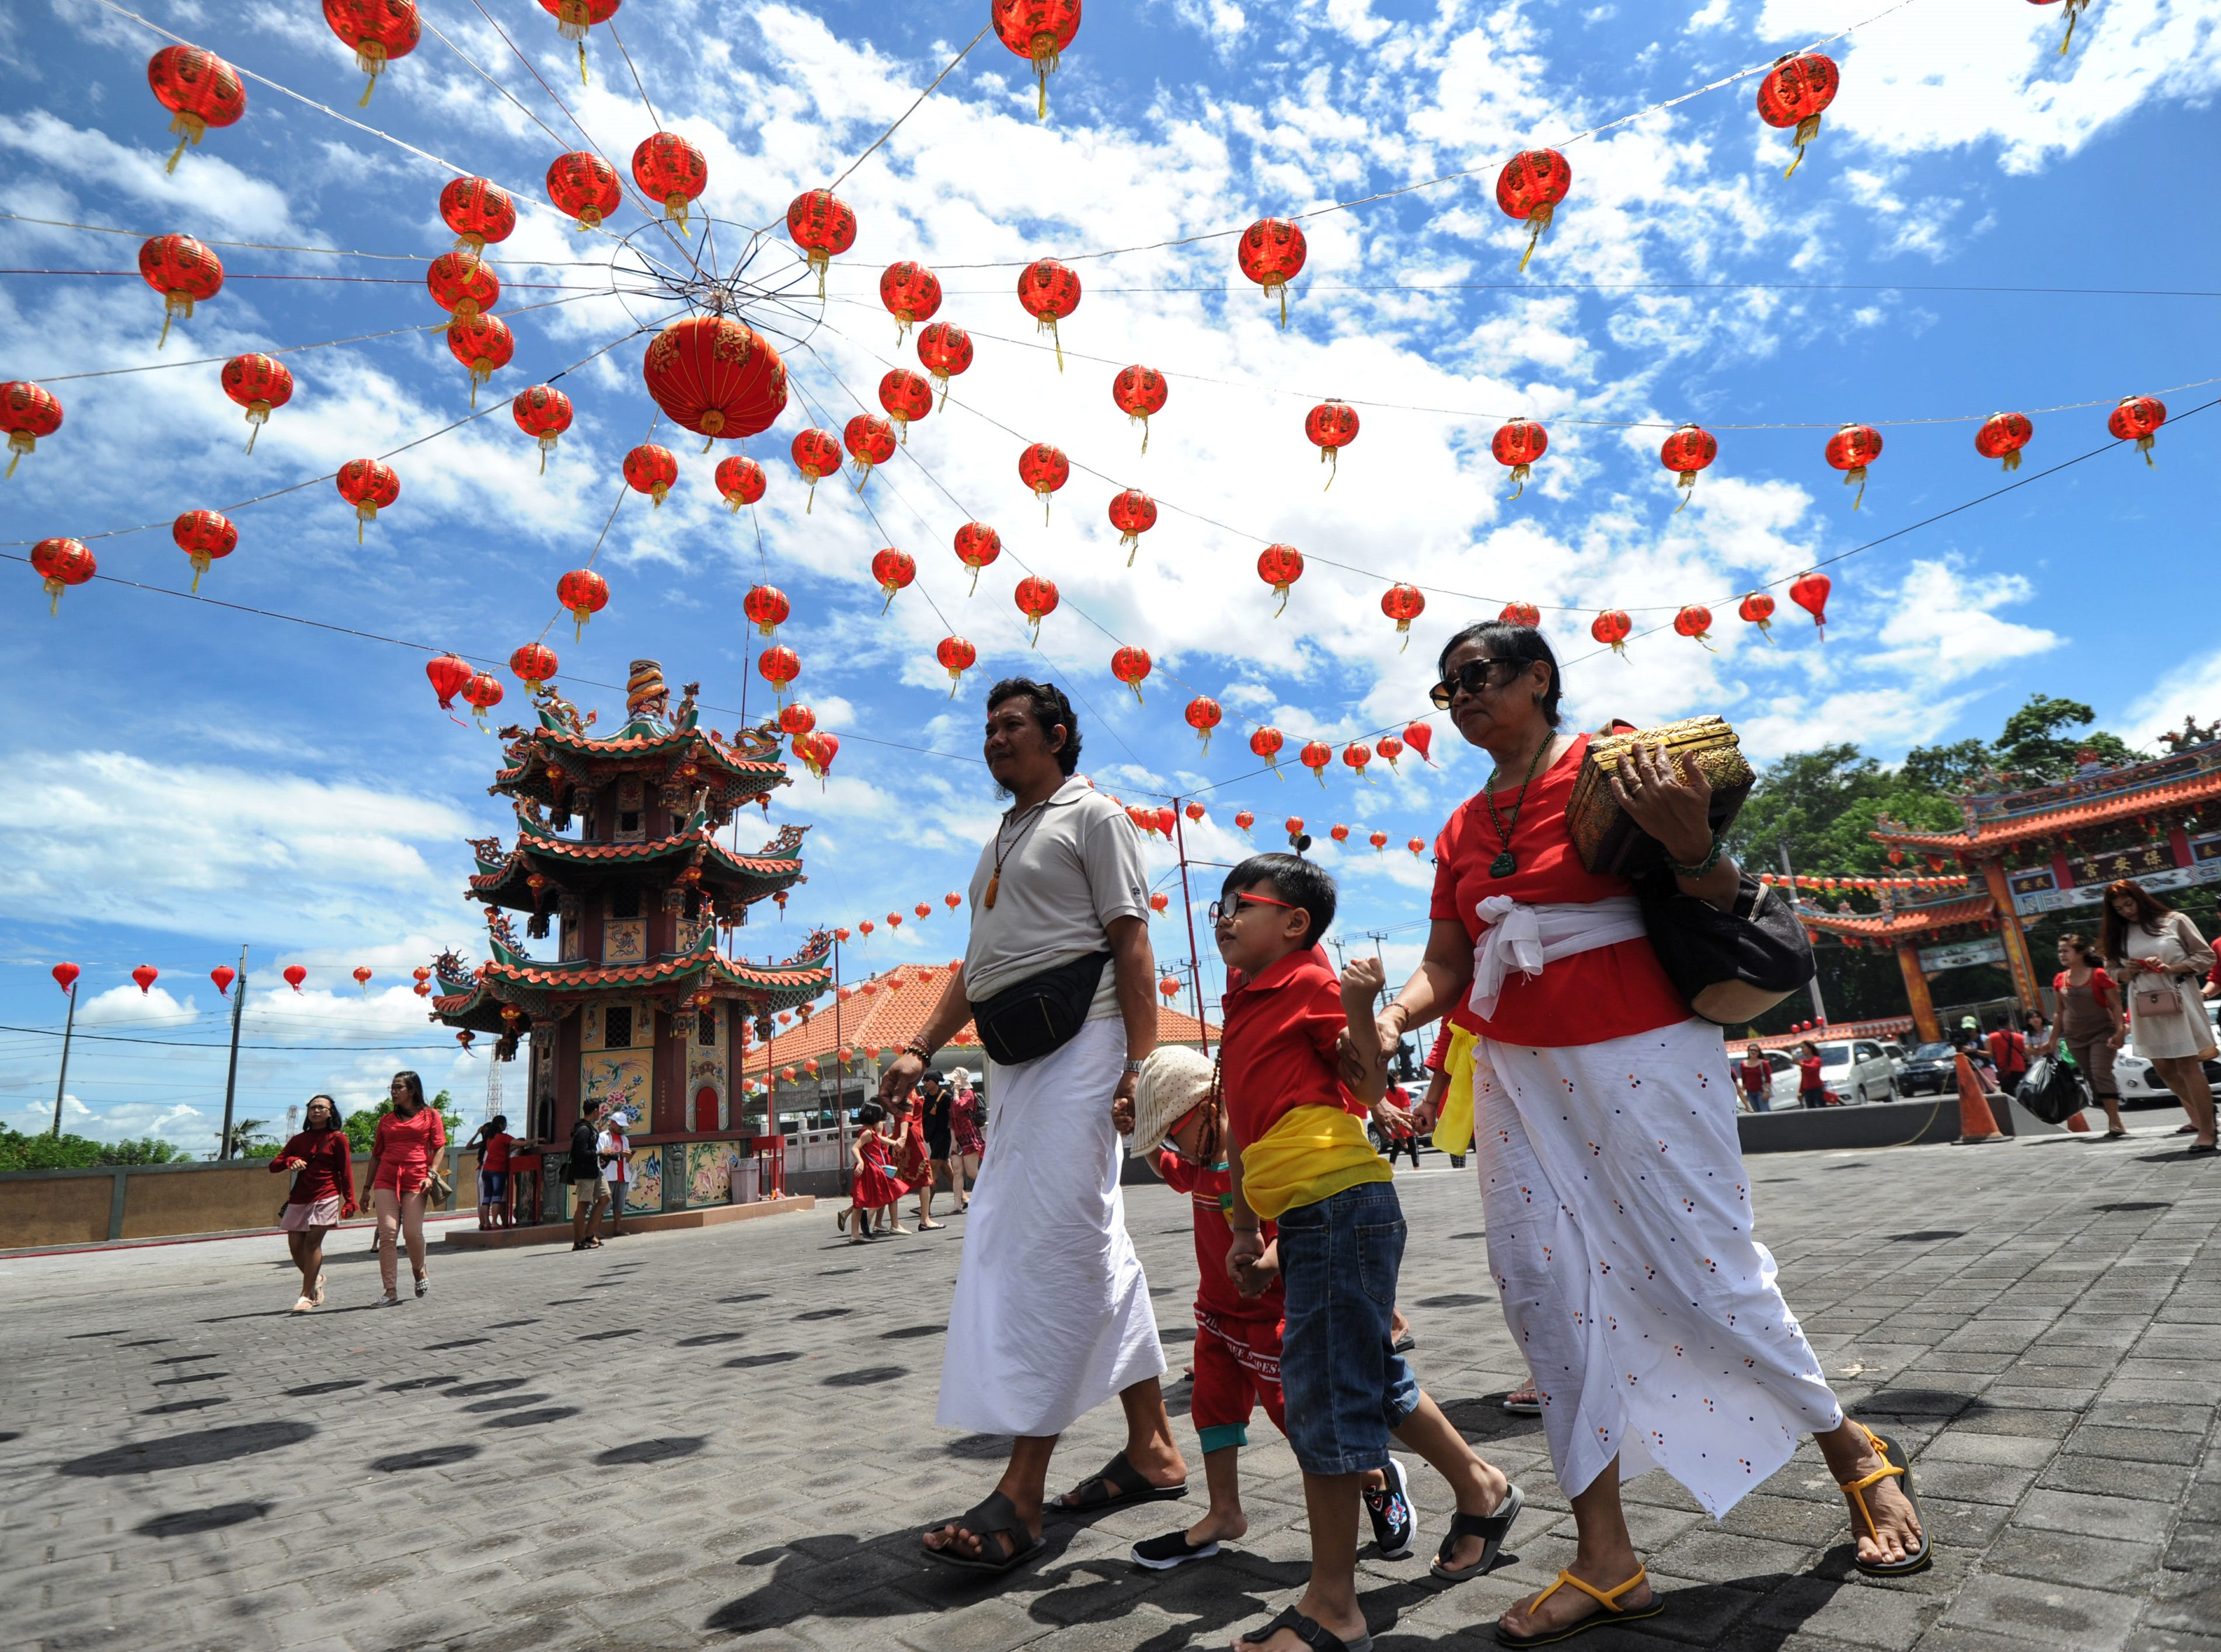 Balinese people wearing traditional outfits arrive at a Chinese temple to pray on the first day of the Lunar New Year in Denpasar on February 5, 2019.